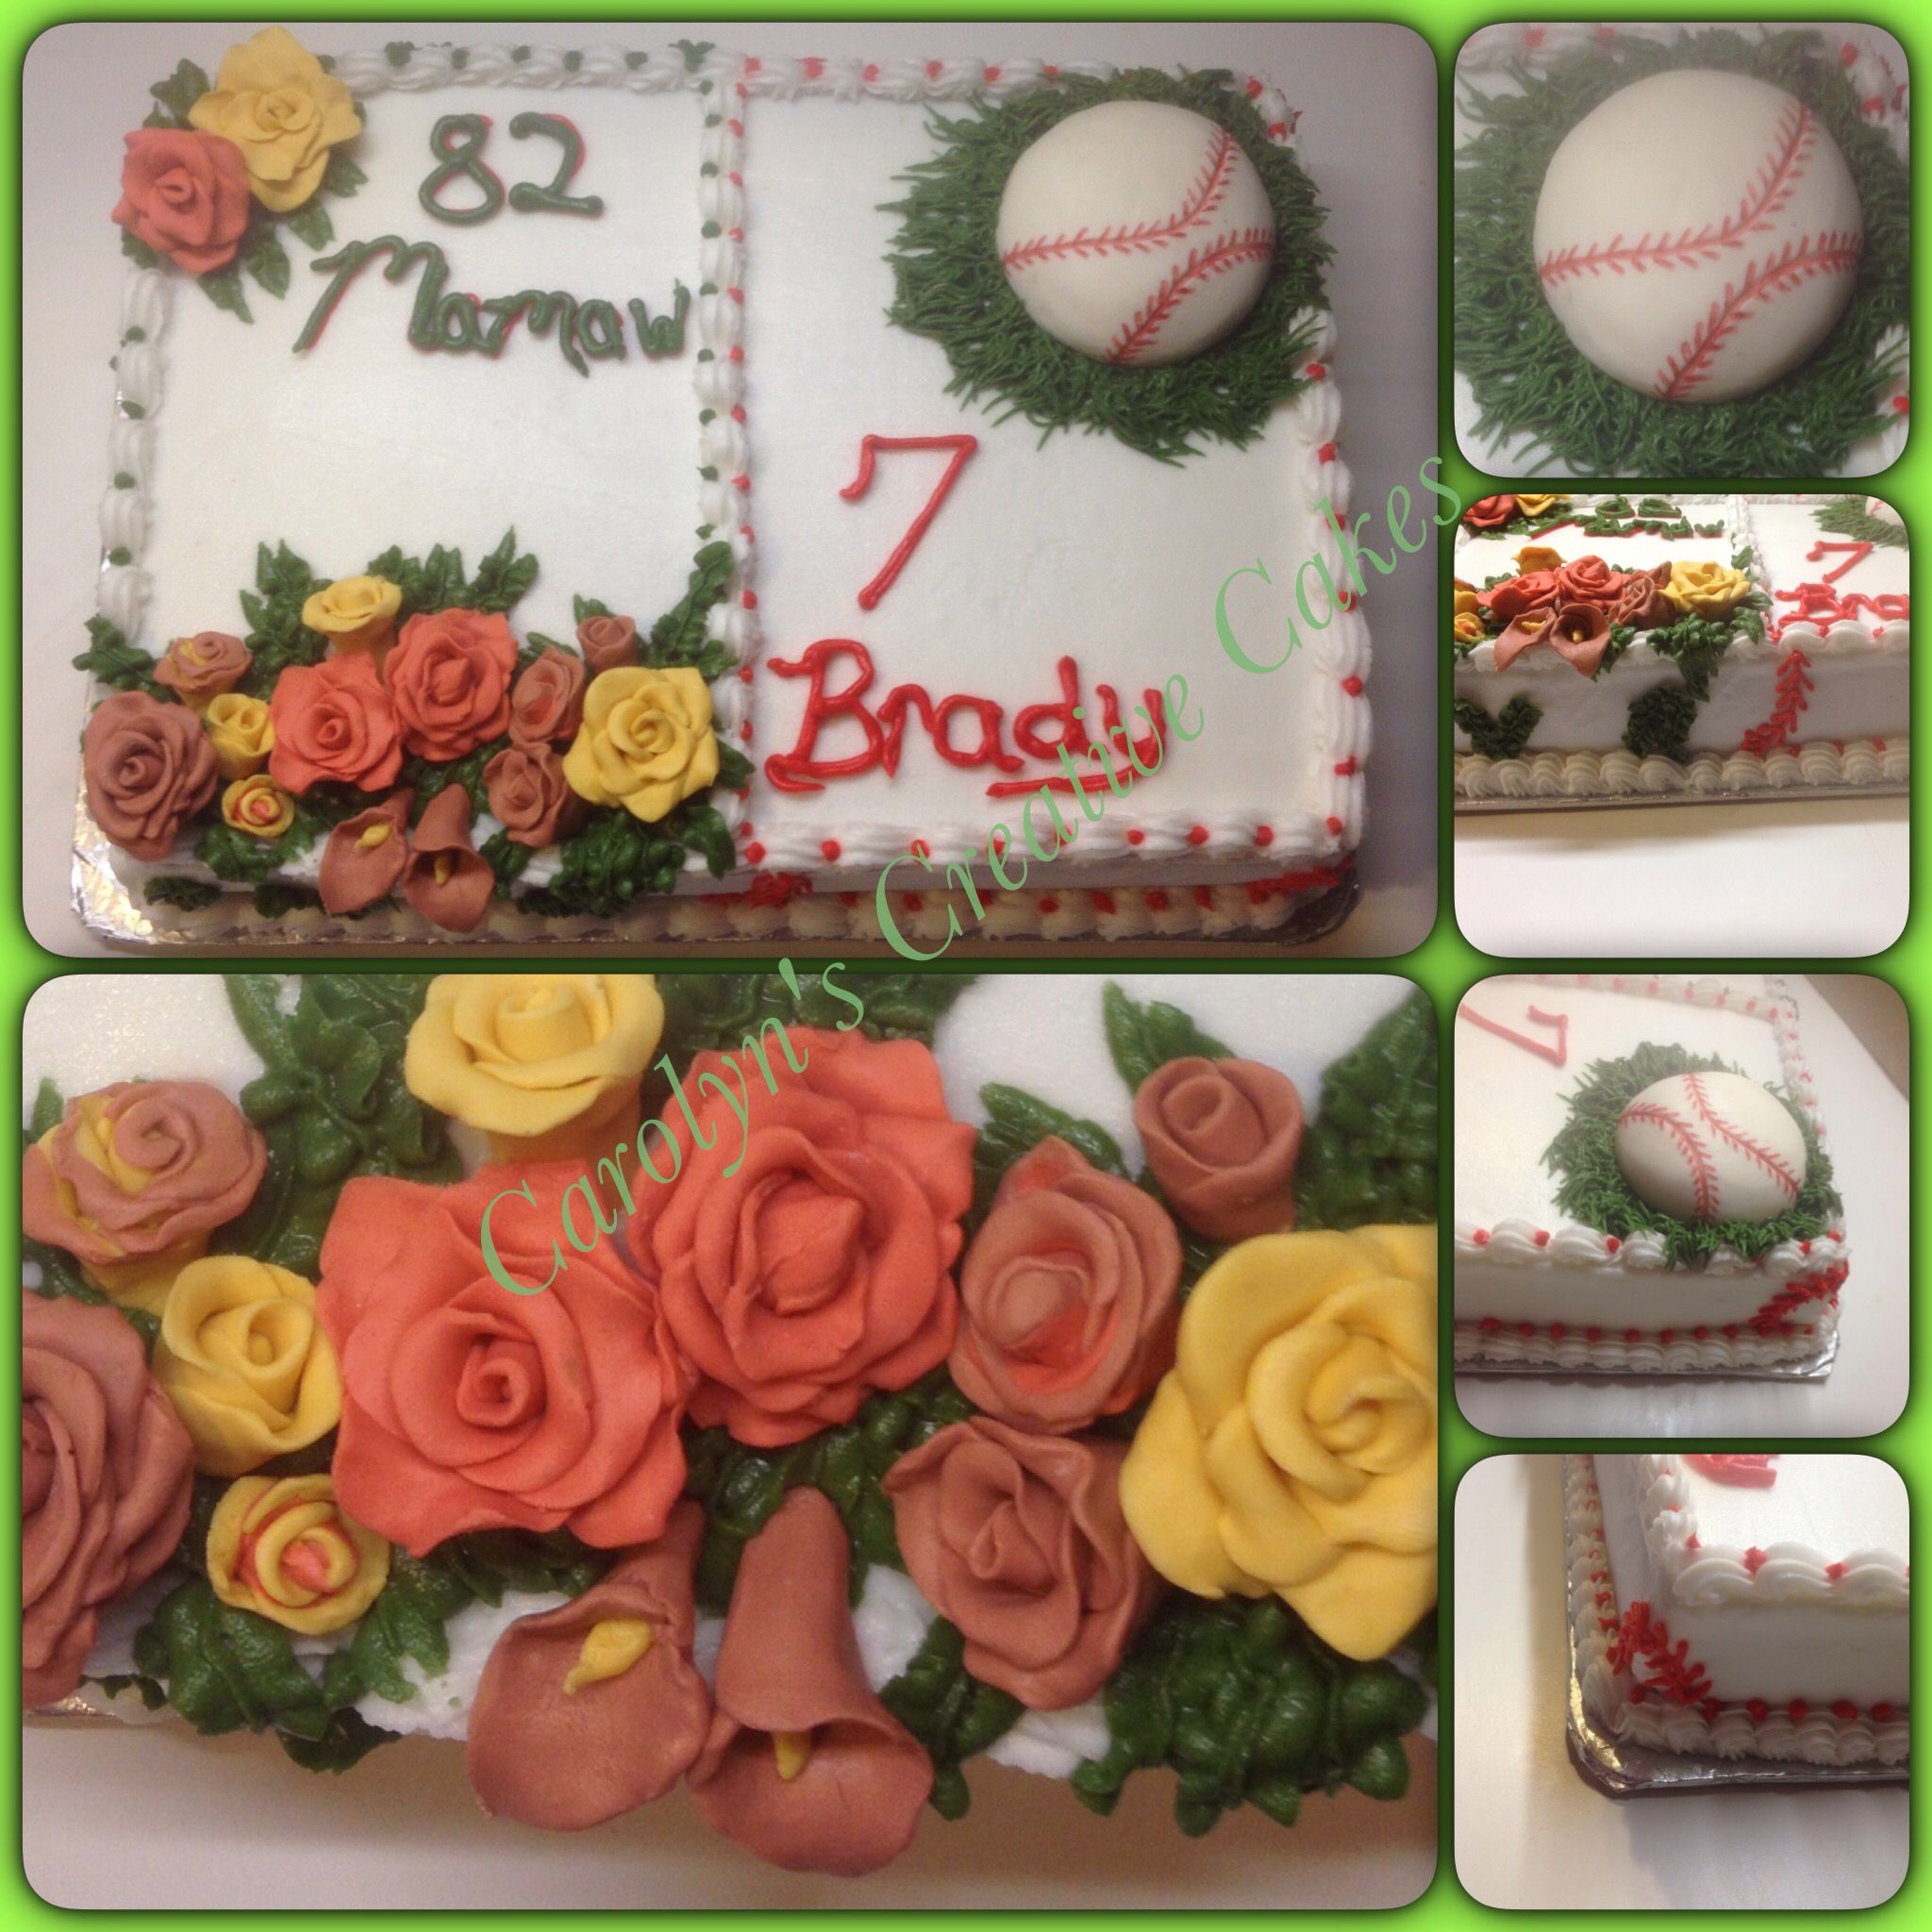 Flower and baseball cake, all decorations made out of modeling chocolate